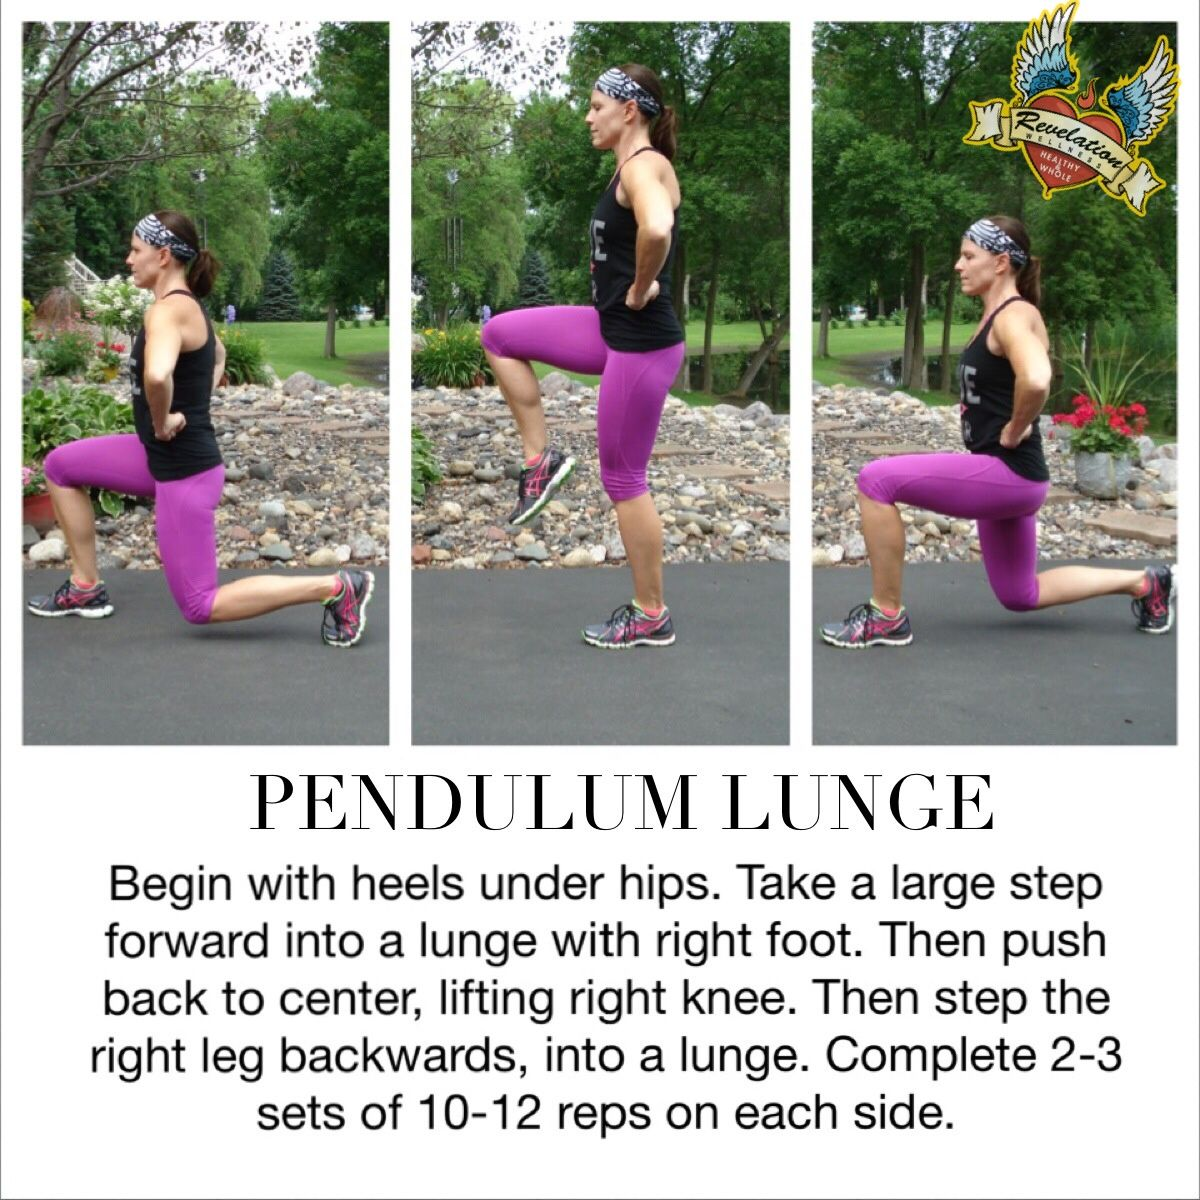 Pendulum Lunge! Give it a try and let us know what you think! revelationwellness.org